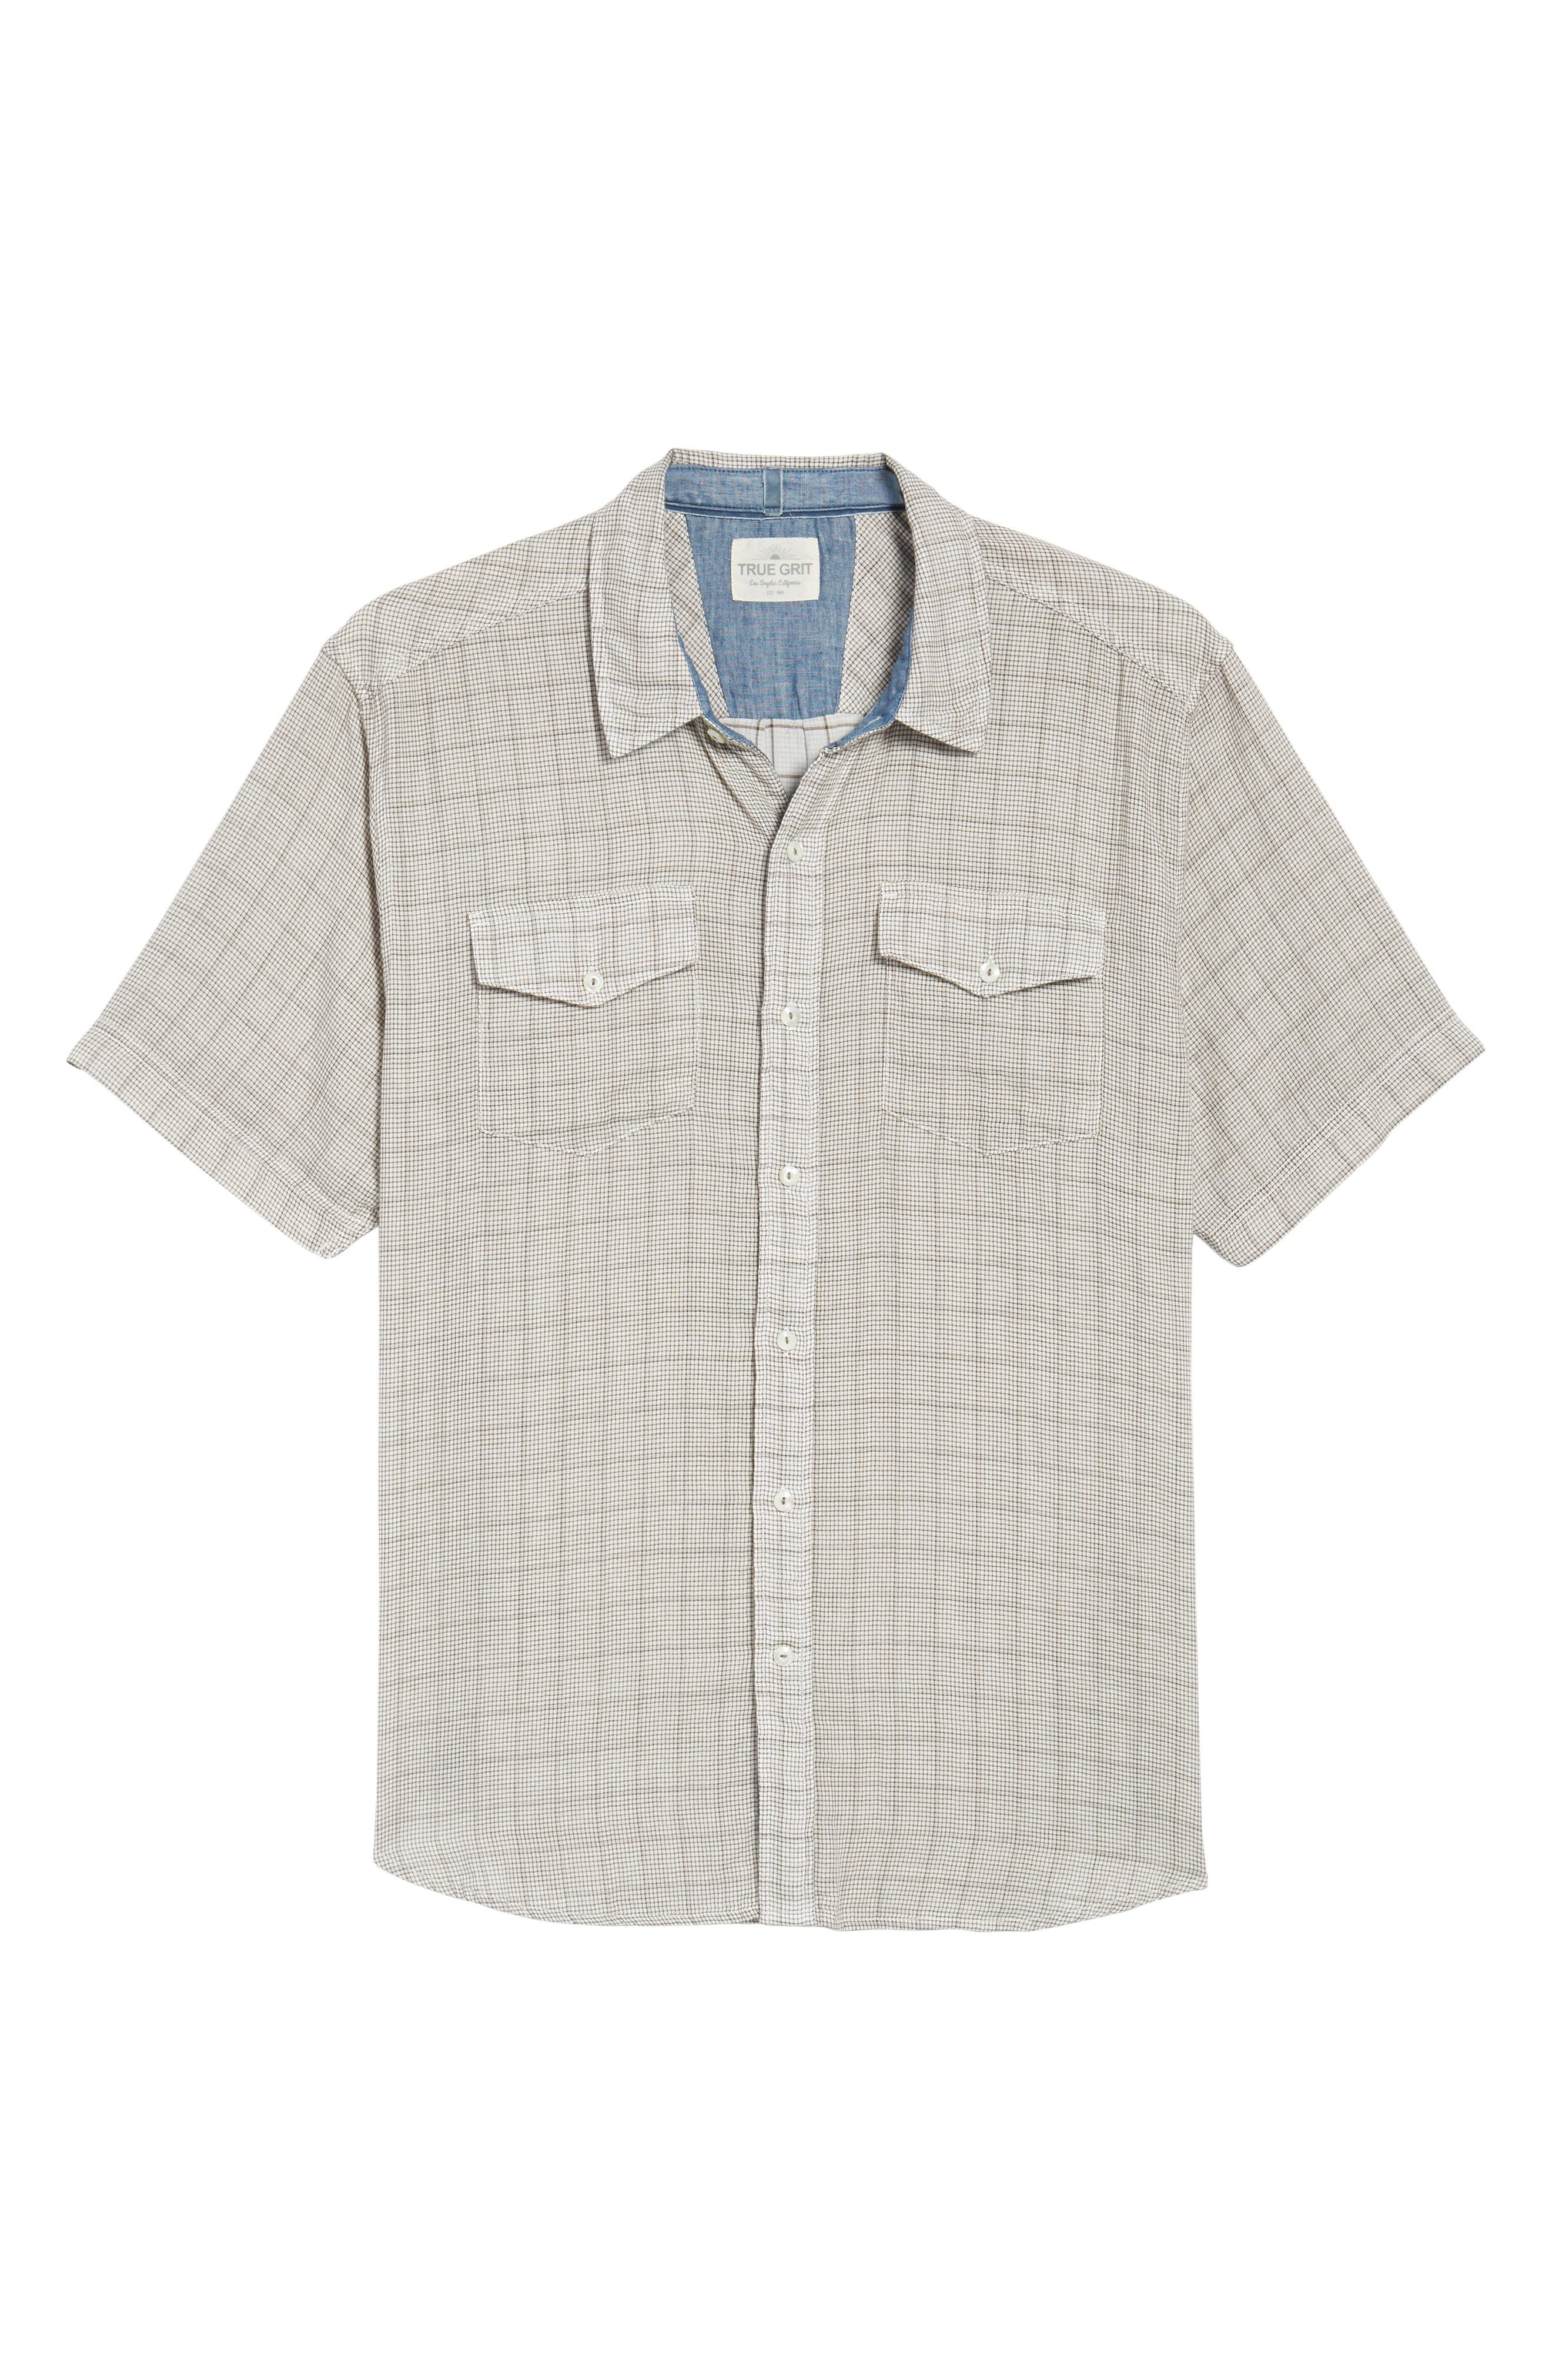 Crossroads Check Sport Shirt,                             Alternate thumbnail 6, color,                             Brown